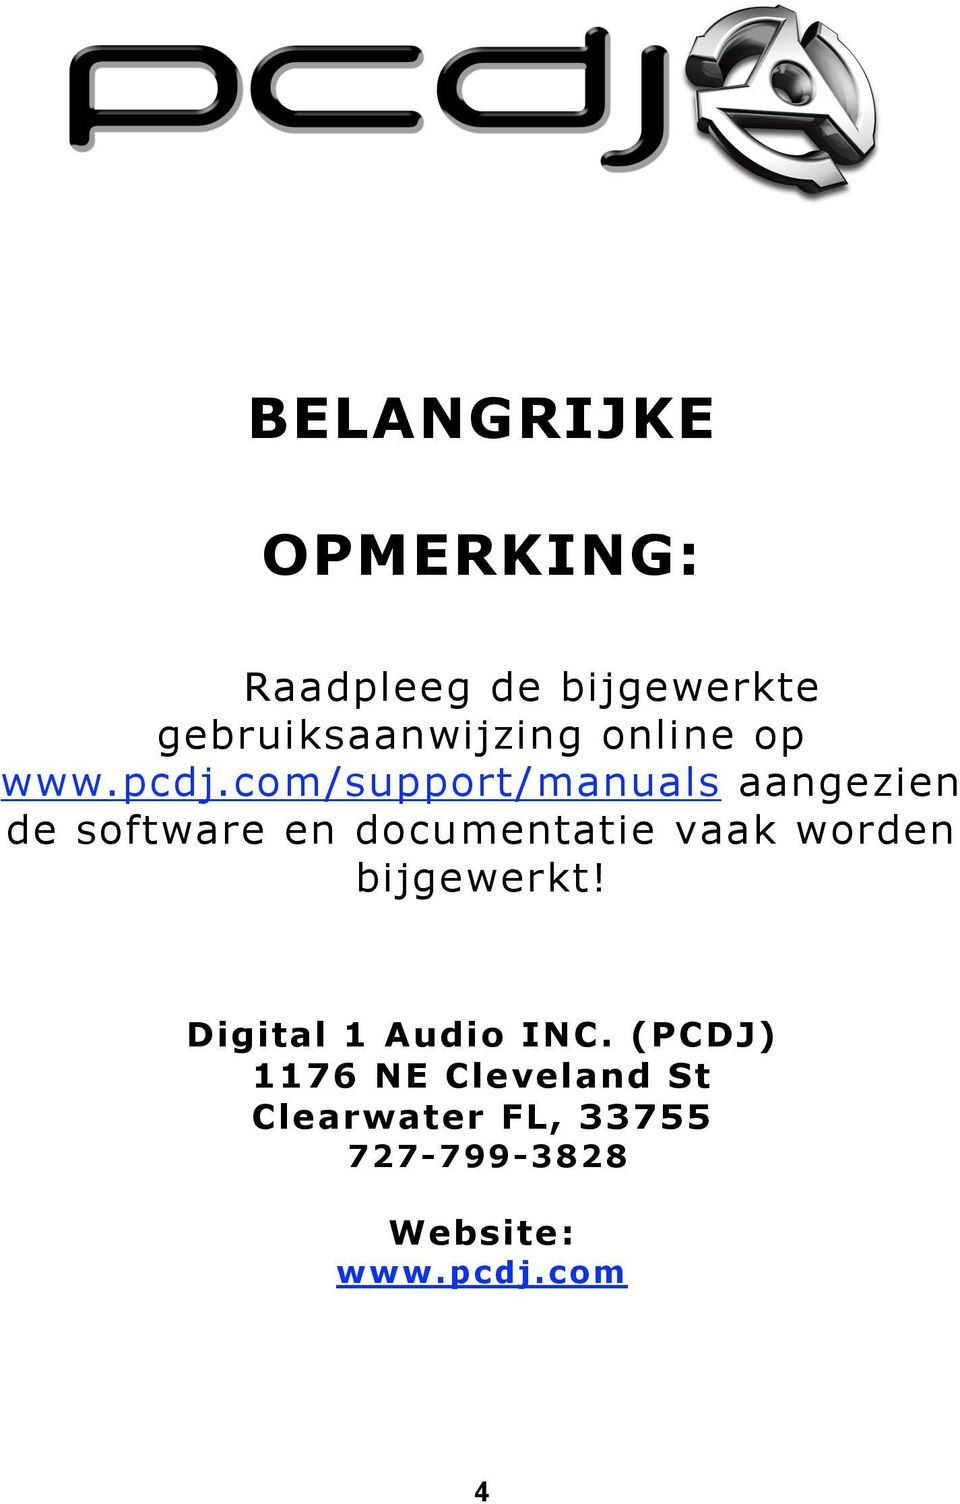 com/support/manuals aangezien de software en documentatie vaak